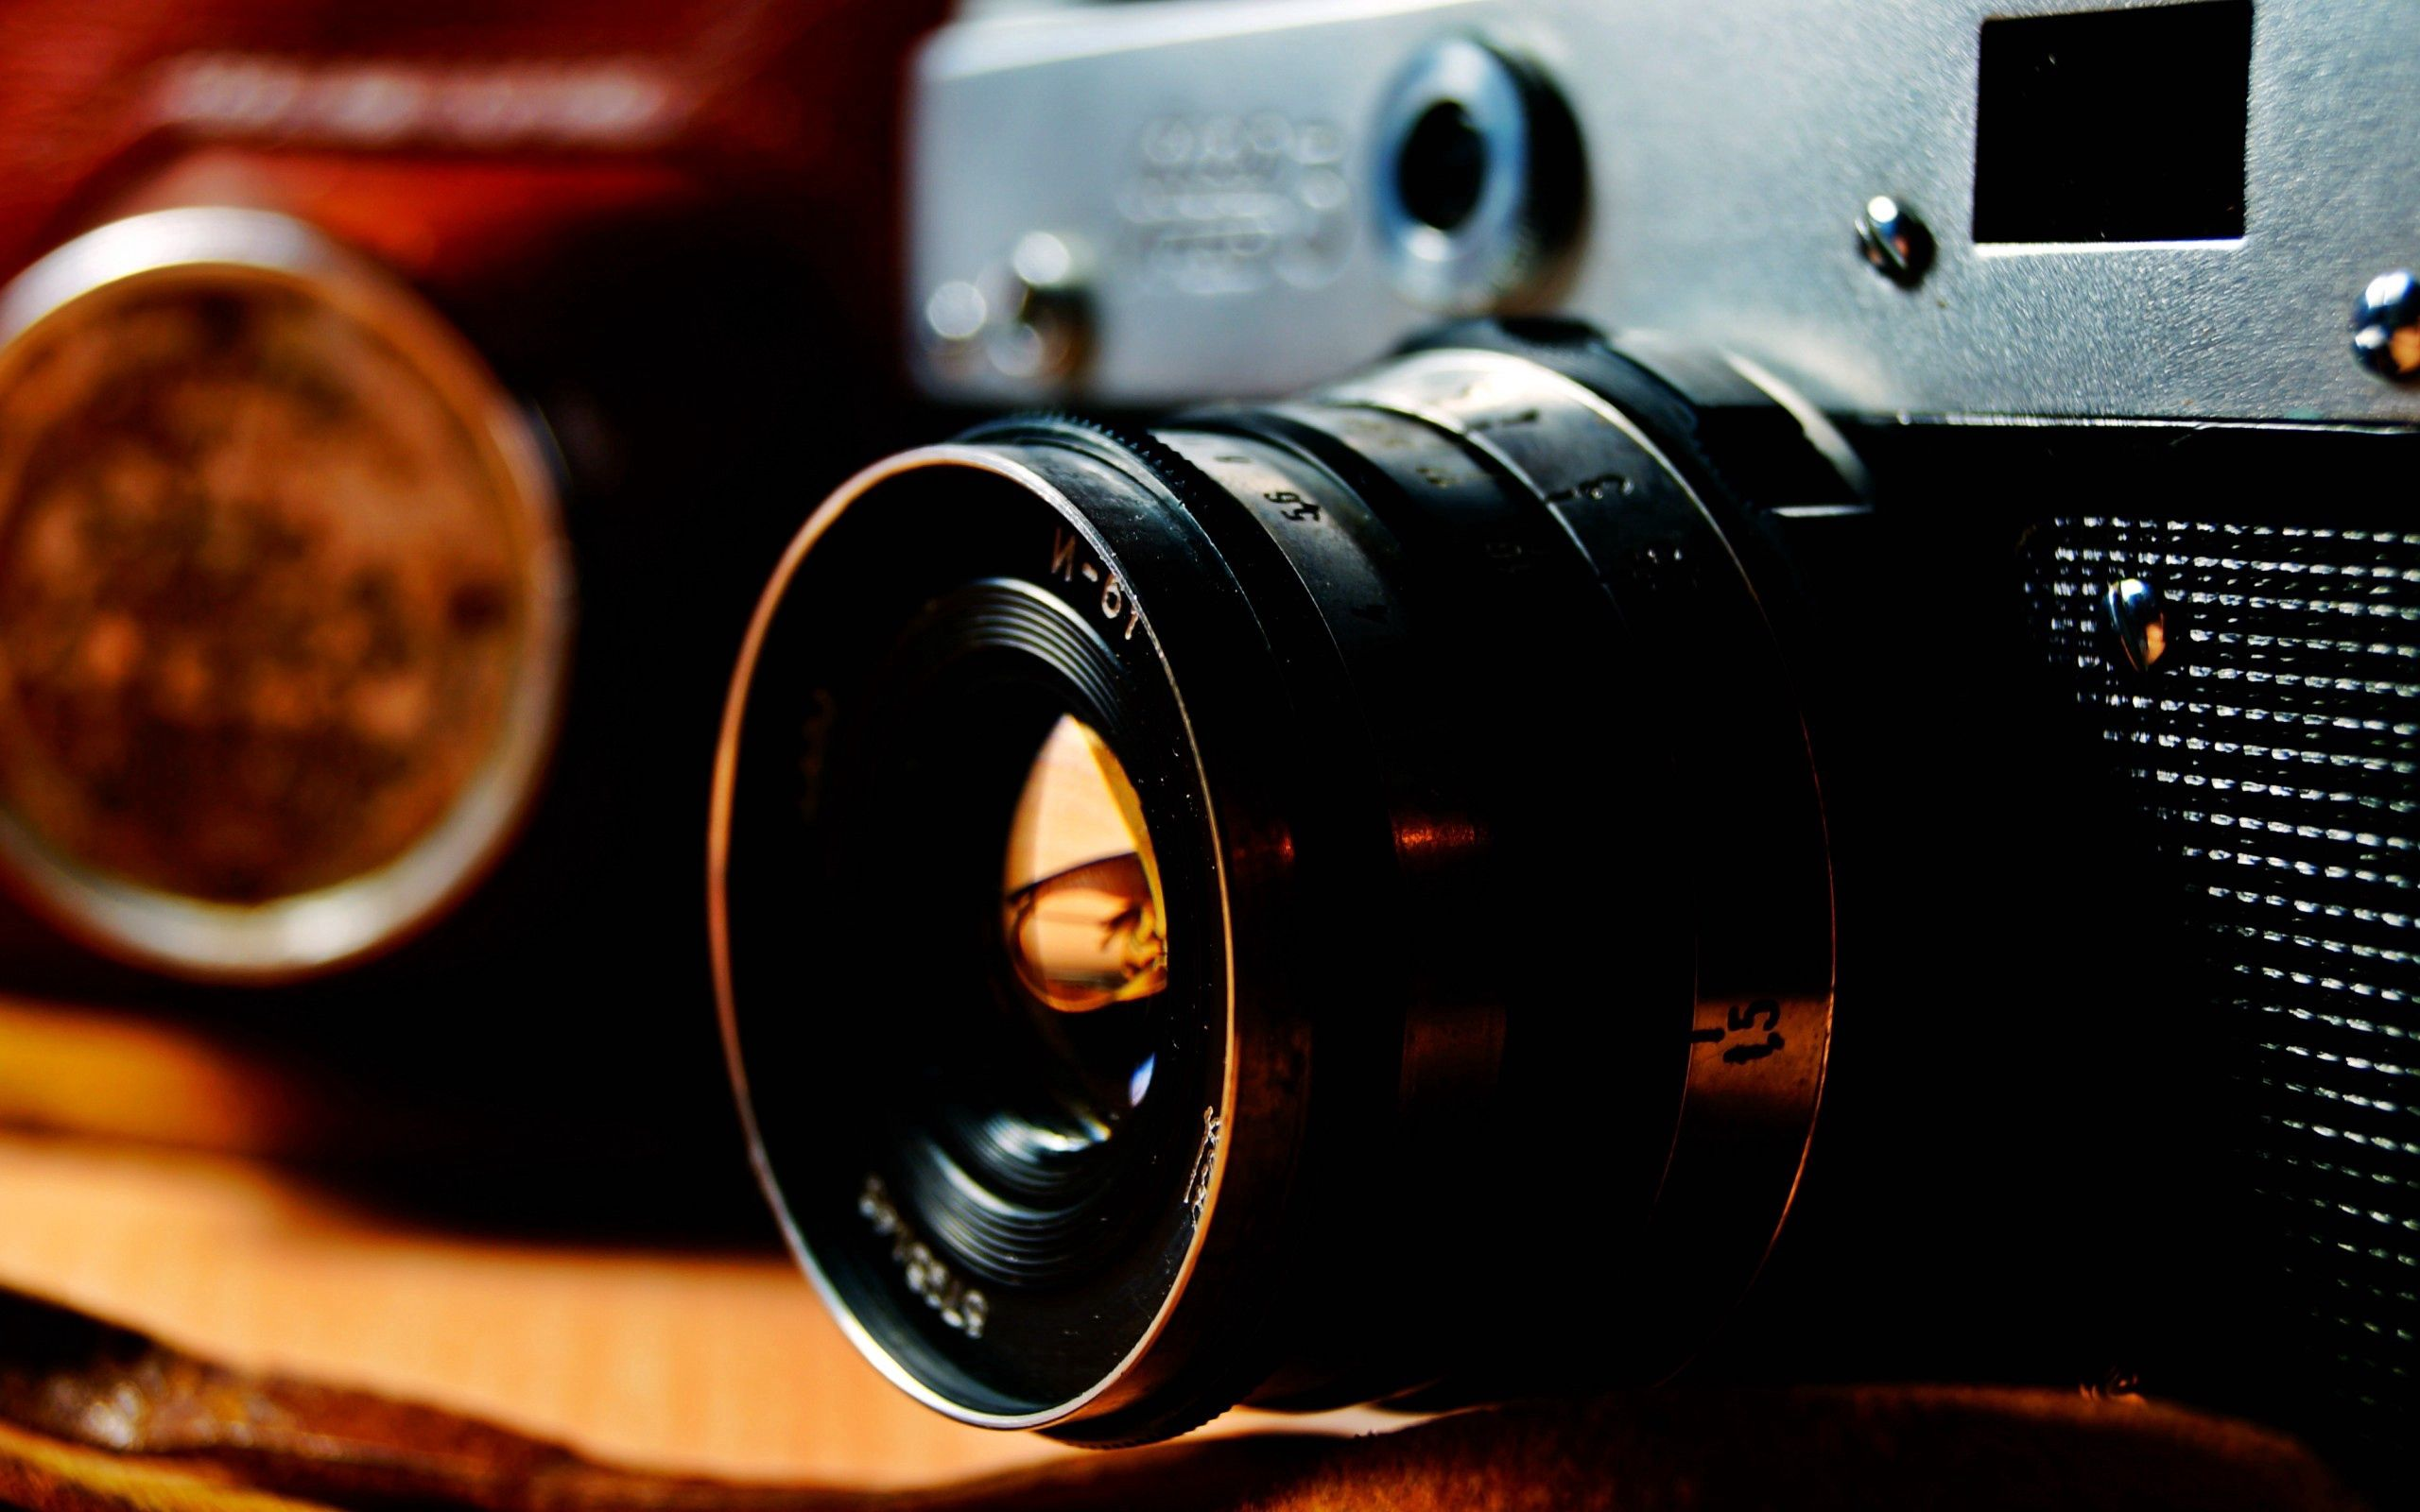 110525 download wallpaper Miscellanea, Miscellaneous, Glass, Lens, Camera screensavers and pictures for free